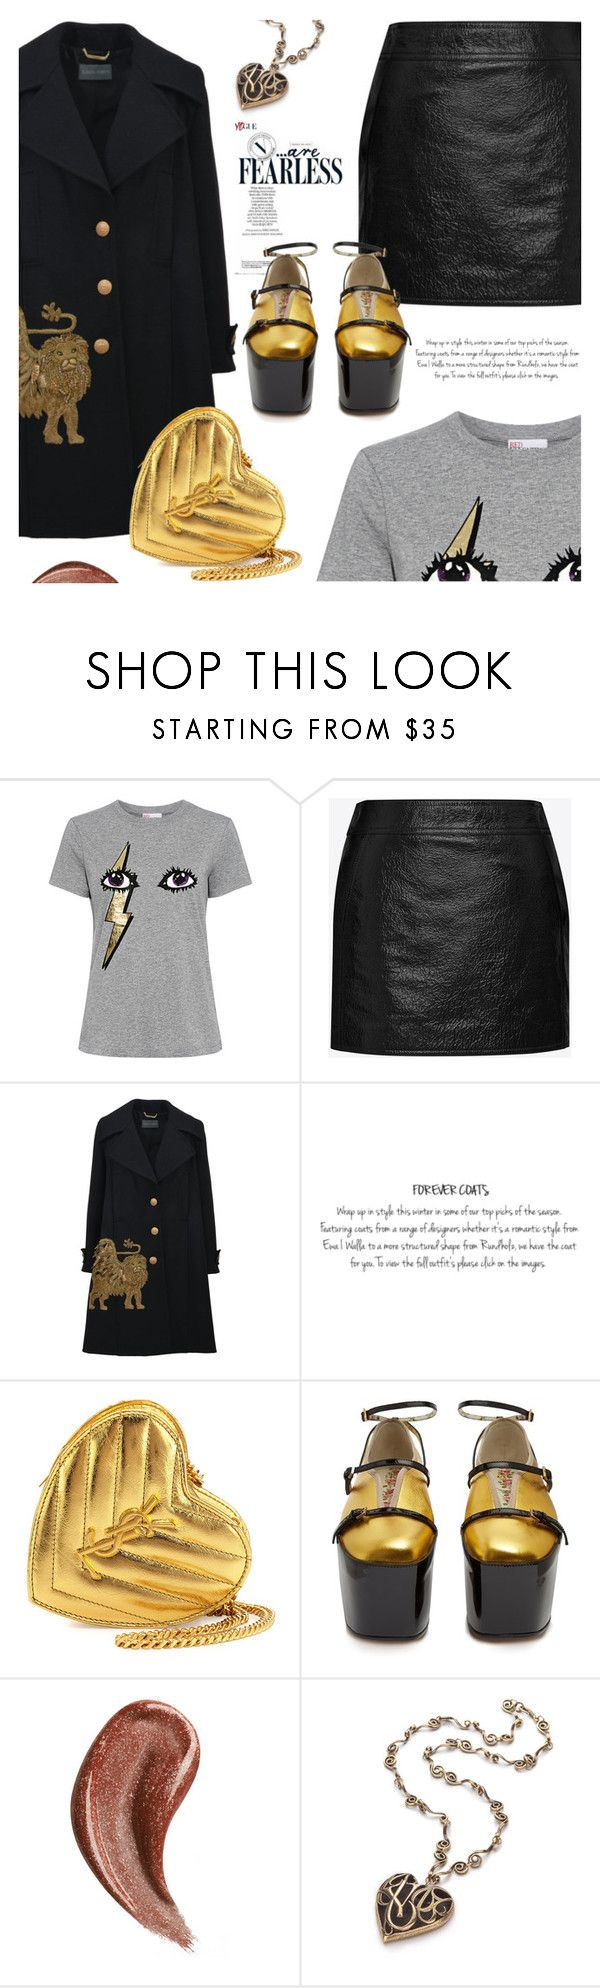 """""""Dress up a T-Shirt"""" by jan31 ❤ liked on Polyvore featuring RED Valentino, Yves Saint Laurent, Alberta Ferretti, Gucci, tshirts, metallics, PlatformBoots, leatherskirts and coats"""